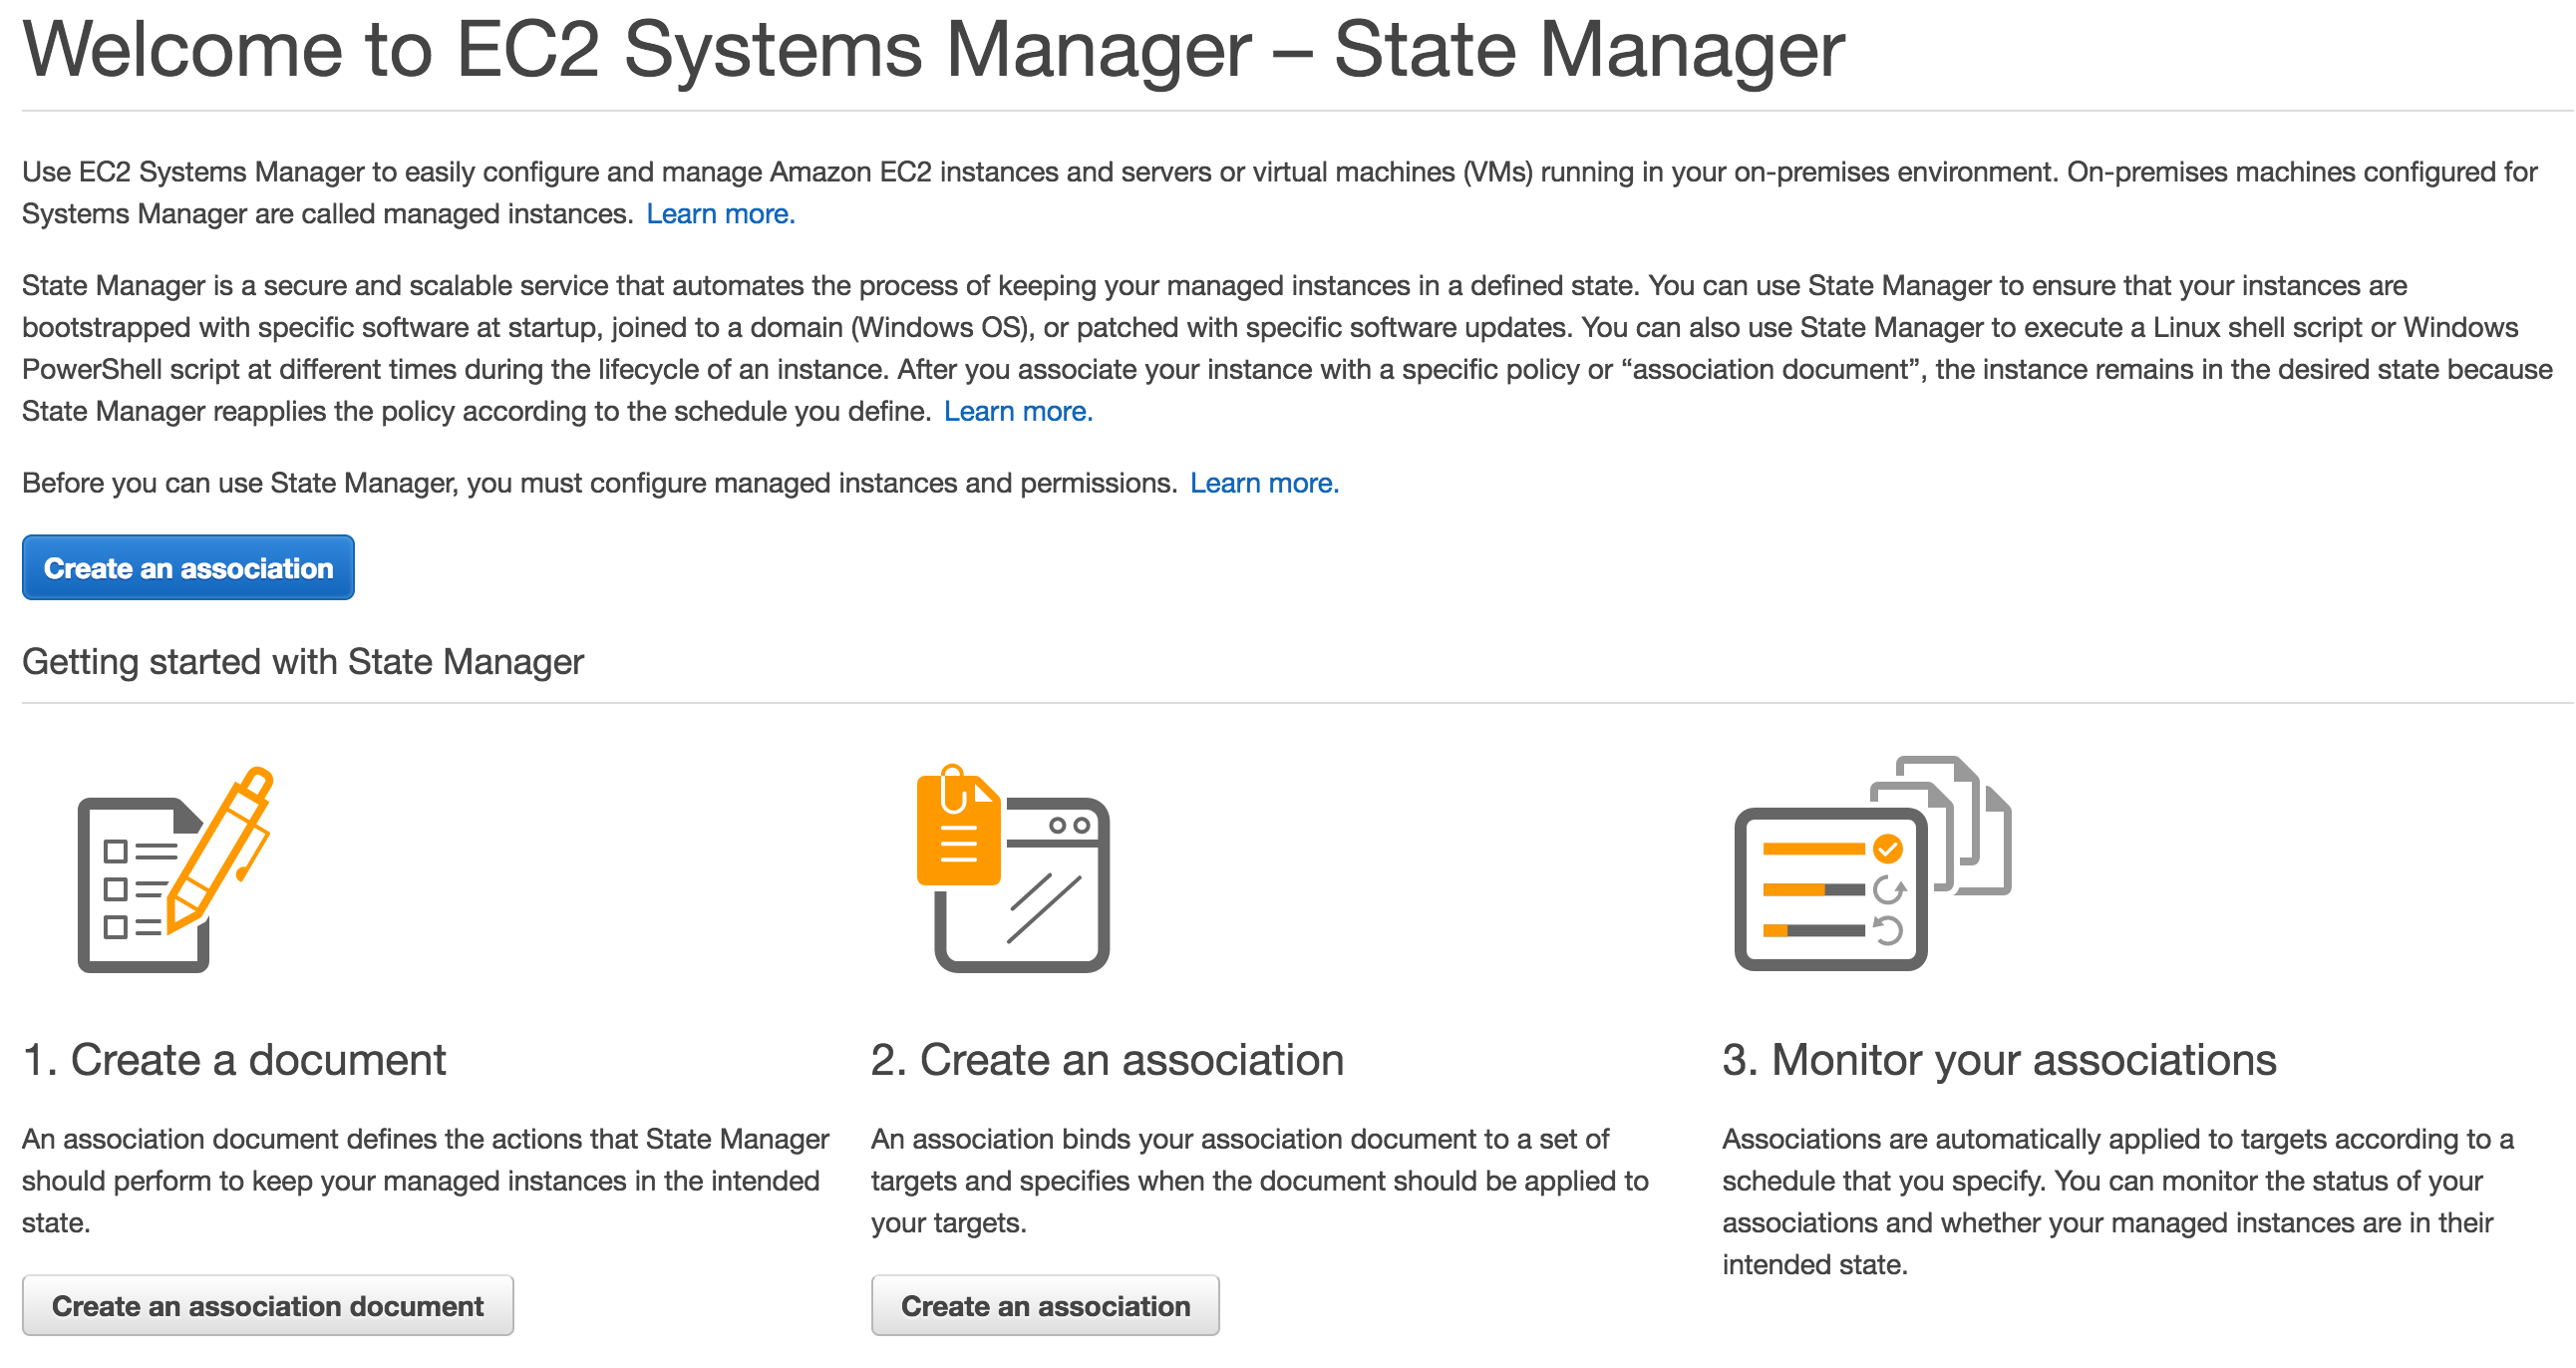 AWS EC2 Systems Manager - State Manager - The IT Hollow